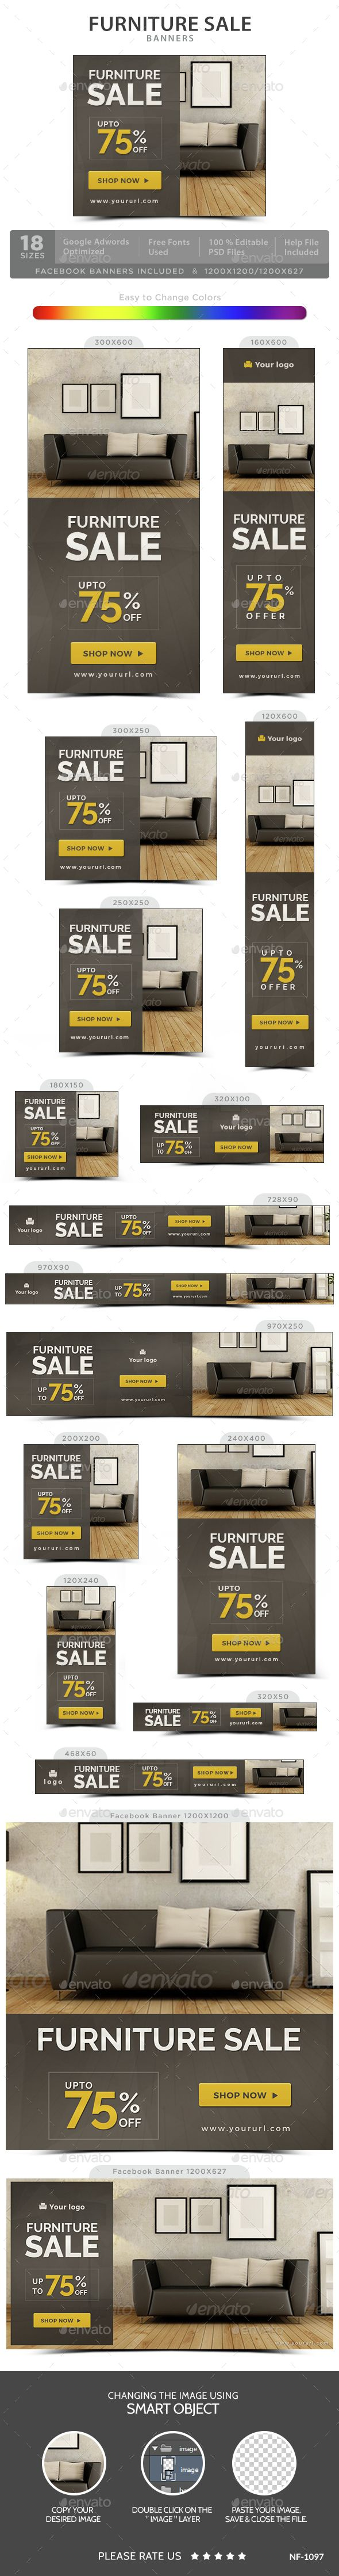 Furniture Sale Web Banners Template PSD. Download here: http://graphicriver.net/item/furniture-sale-banners/15014197?ref=ksioks